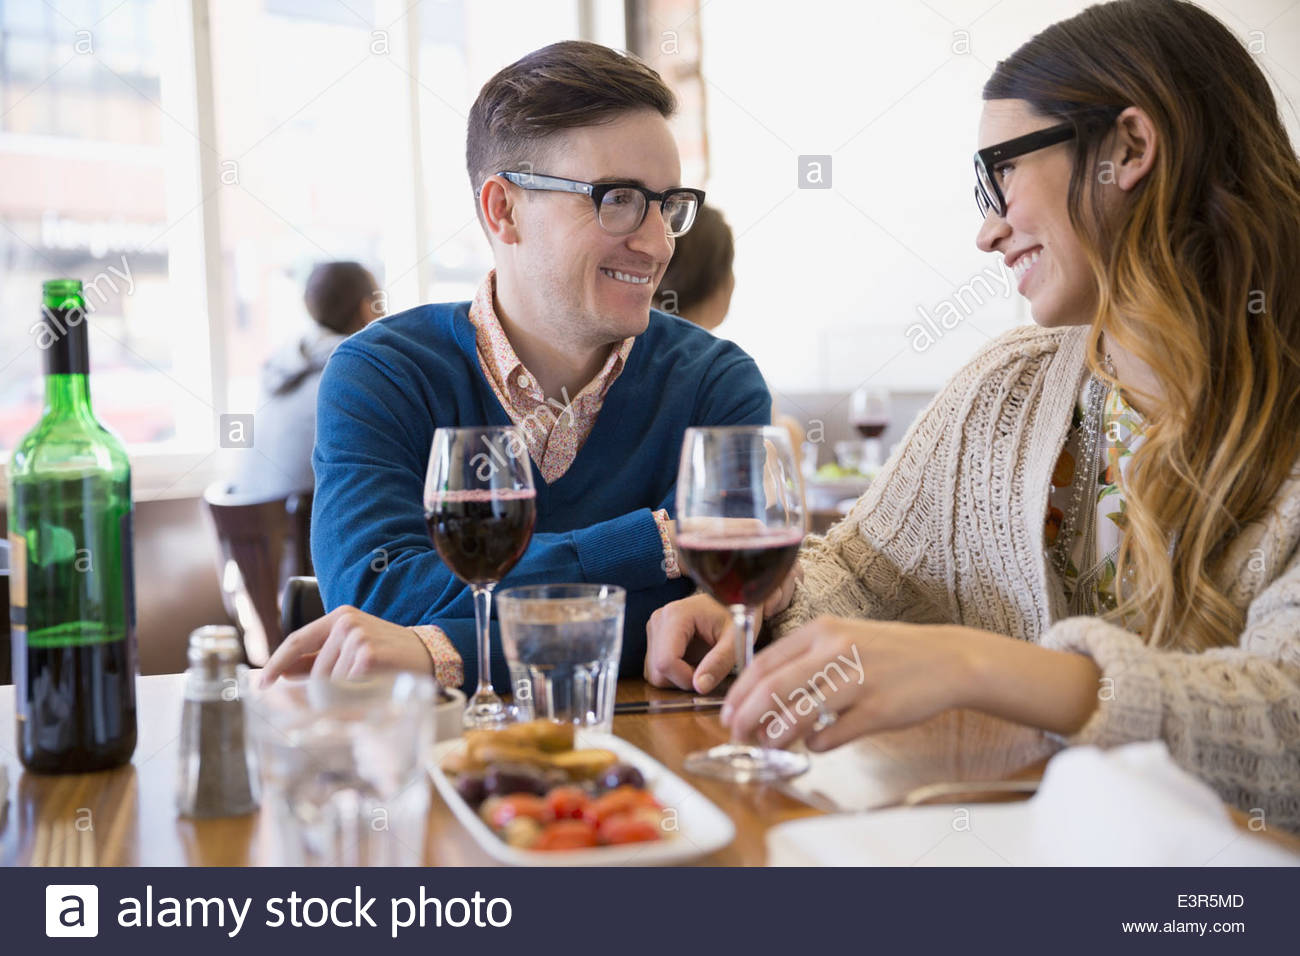 Couple enjoying appetizer and wine at bistro - Stock Image